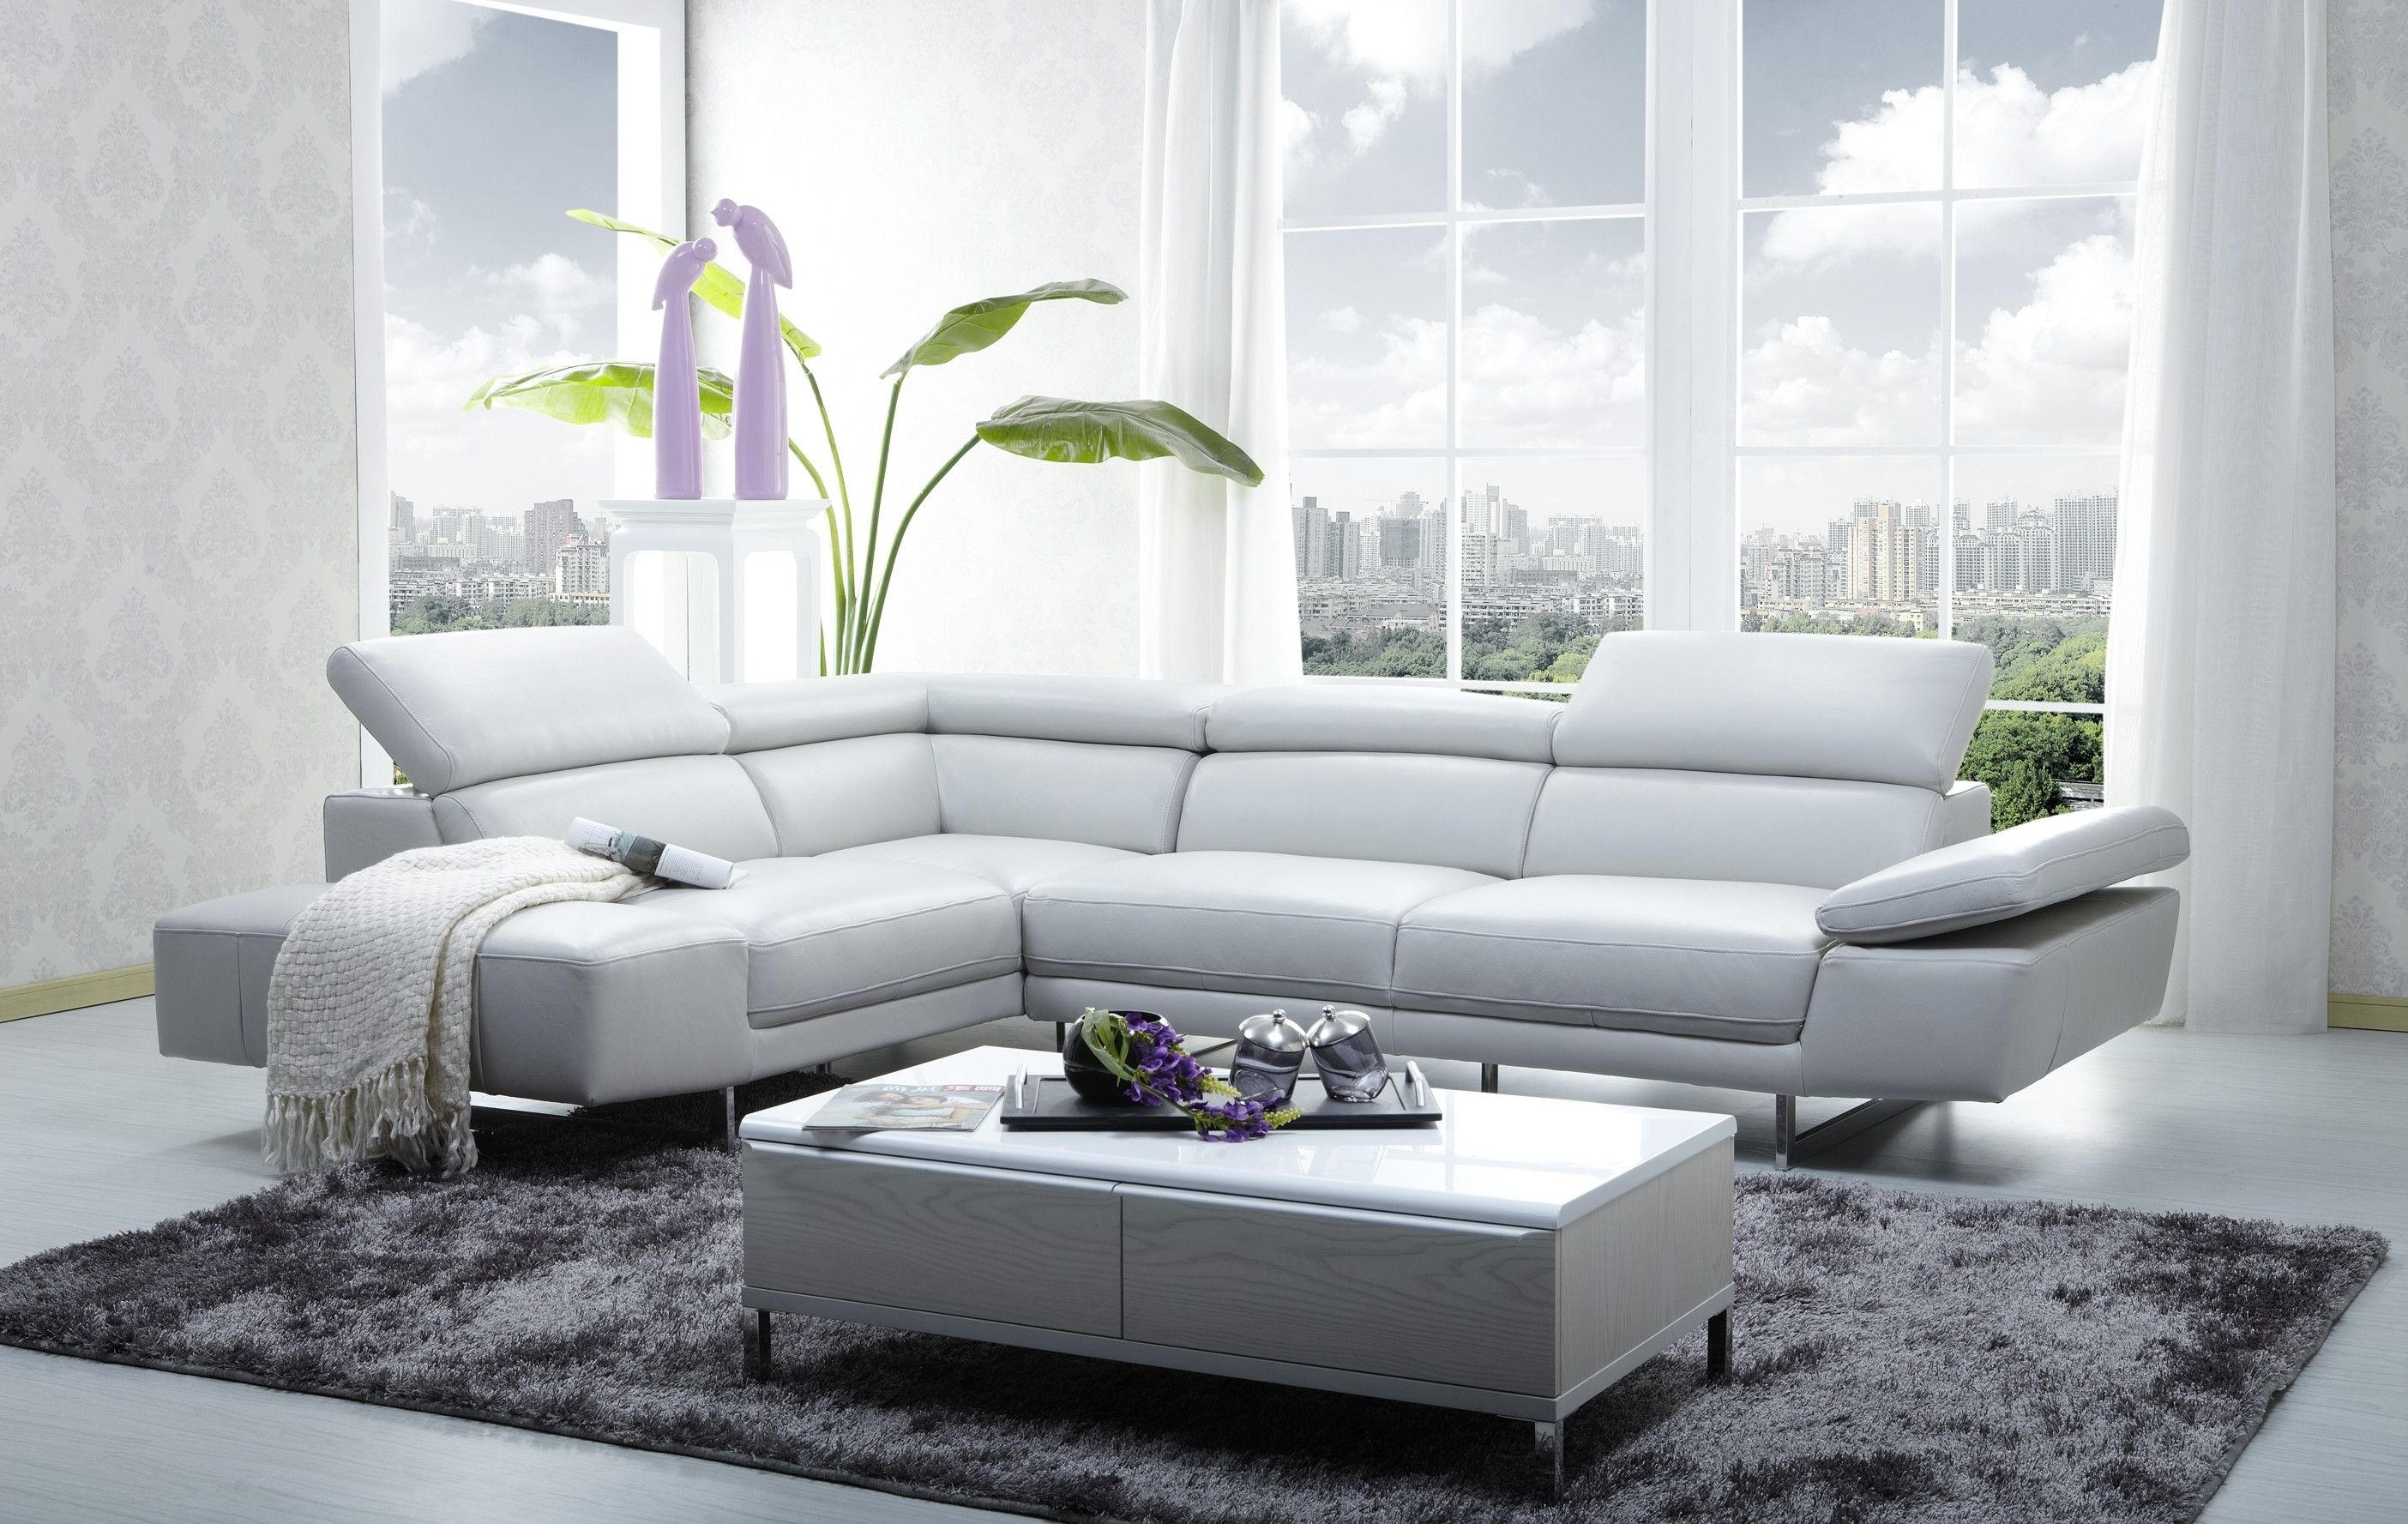 Modern Sofa Kijiji Calgary Remarkable Sectional Couch Ethan Allen Intended For Knoxville Tn Sectional Sofas (Image 9 of 10)